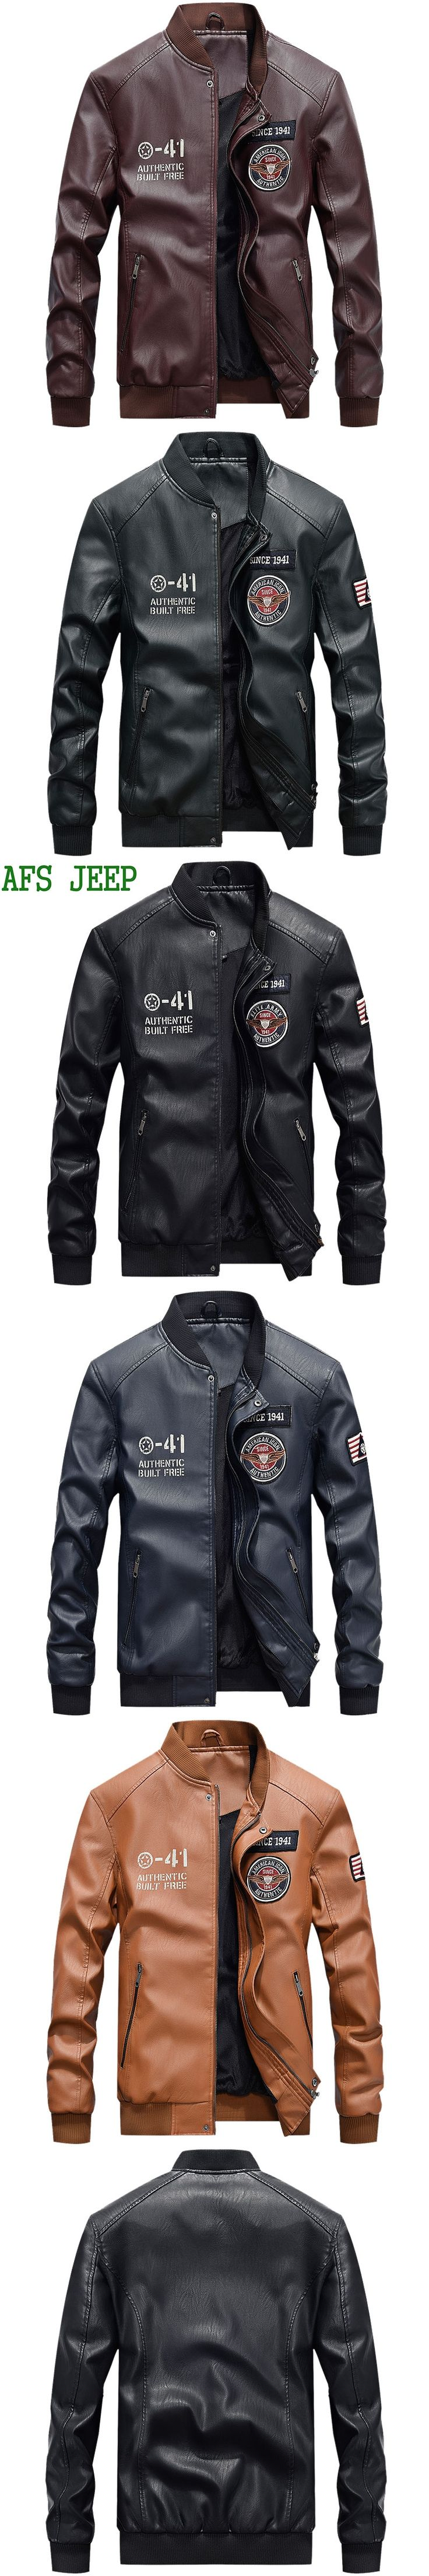 AFS JEEP High quality New arrive brand Motorcycle Faux Leather men PU Jacket ,men's leather jacket, mens leather jackets COOL 99